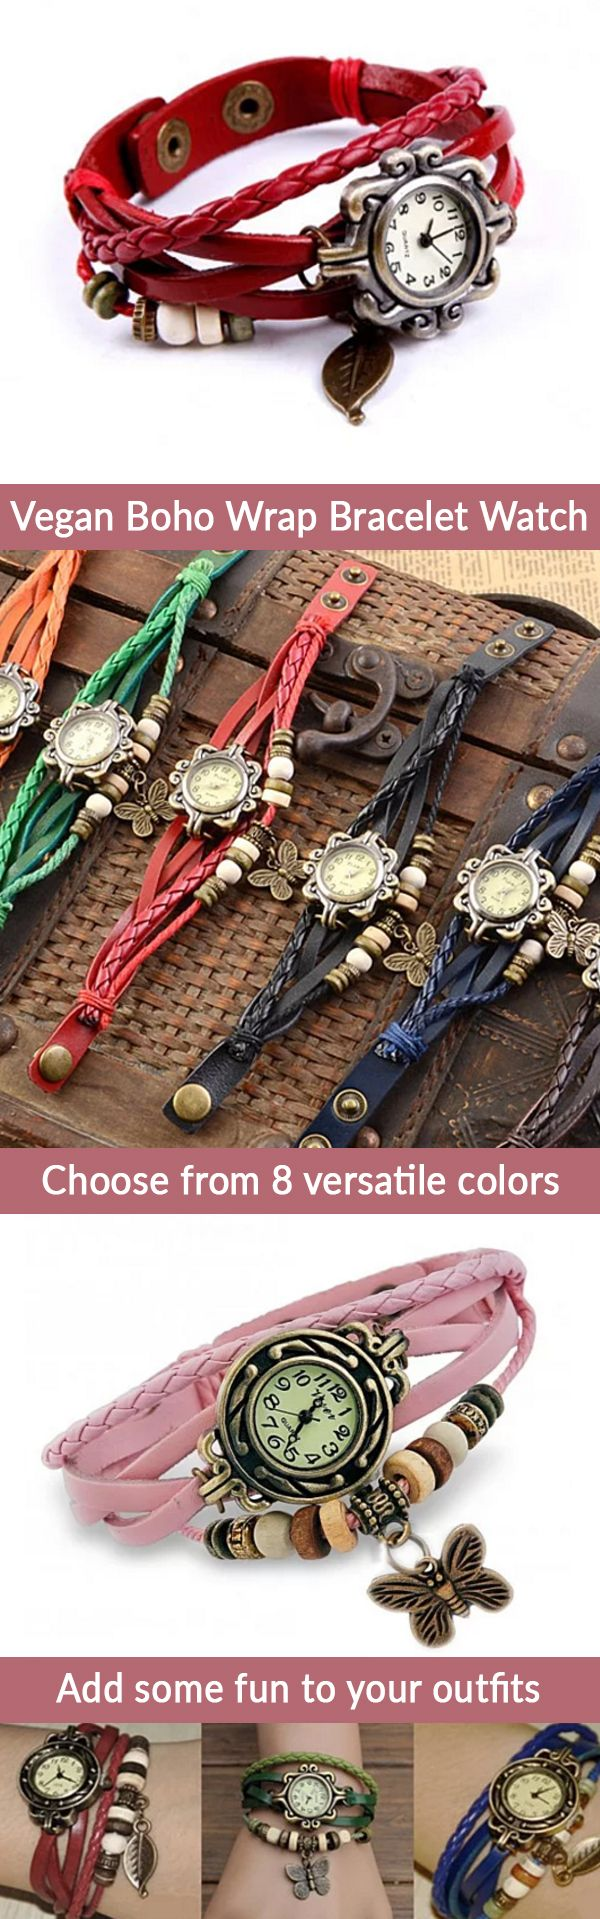 For a limited time, get 80% off our Vegan Boho Bracelet Watch! Available in 8 versatile colors, this beautiful watch will become your favorite accessory. Pair with any outfit and instantly add a Bohomian flair to your day!